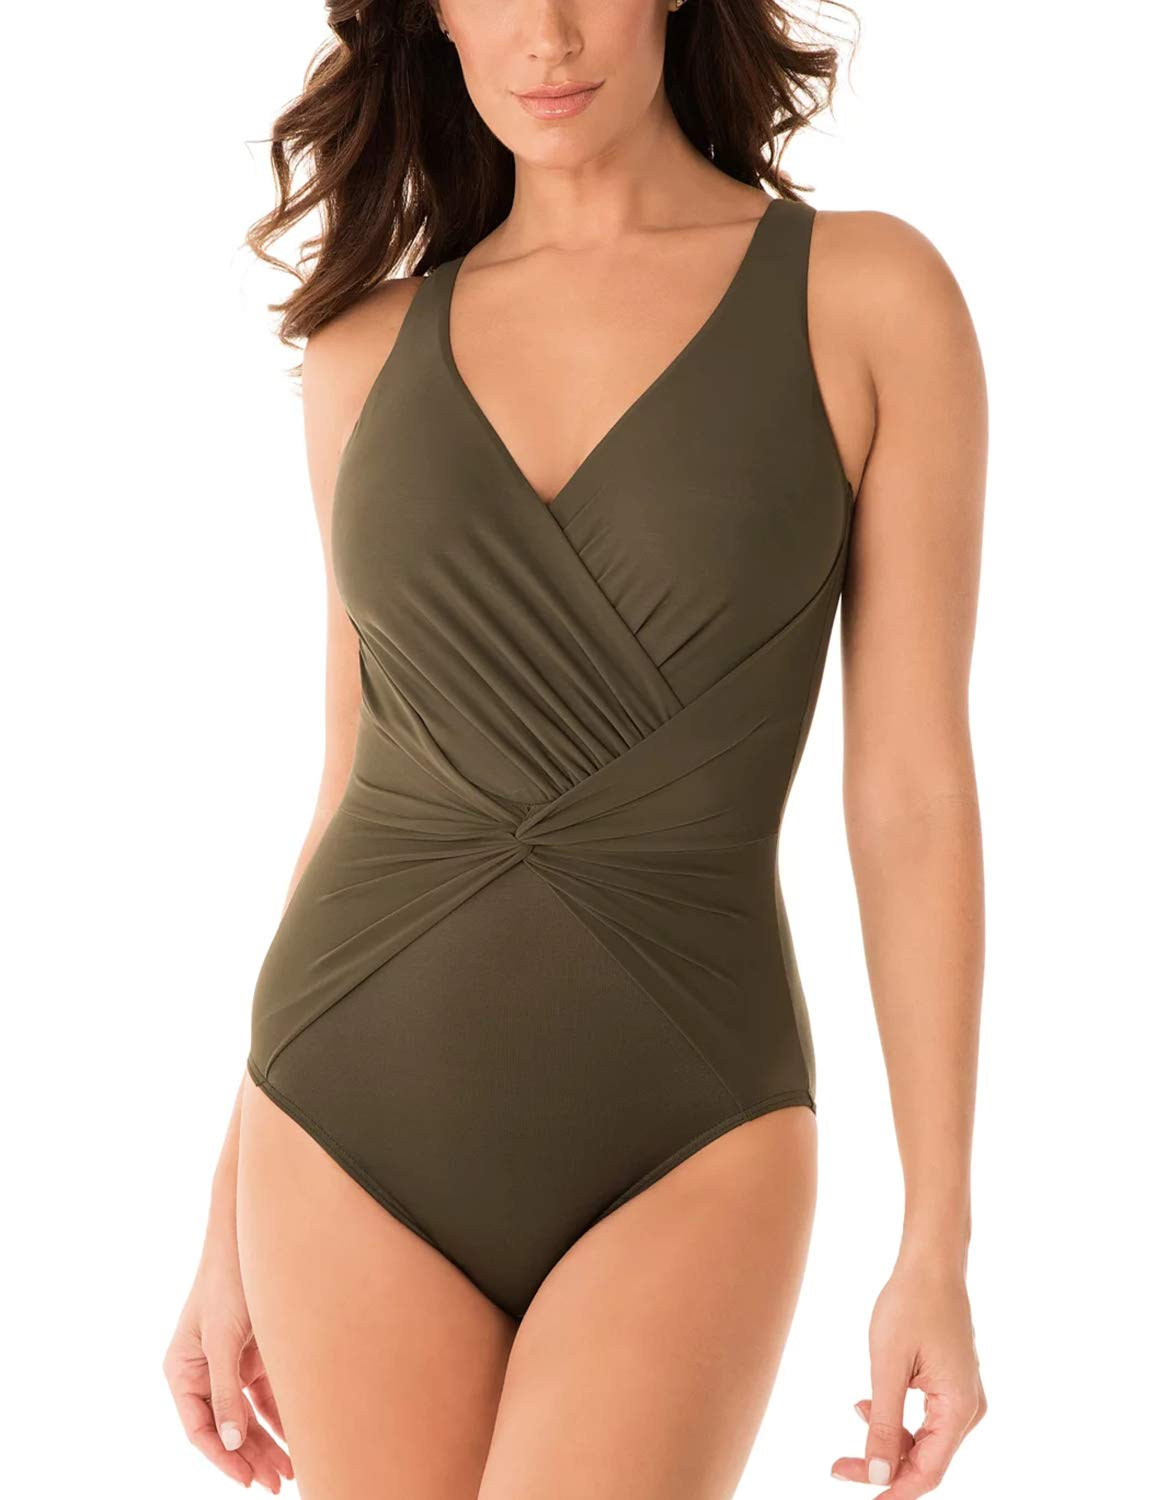 Women's V Neck One Piece Swimsuit Cross Vintage Ruched Swimwear Tummy Control High Cut Bathing Suit Green